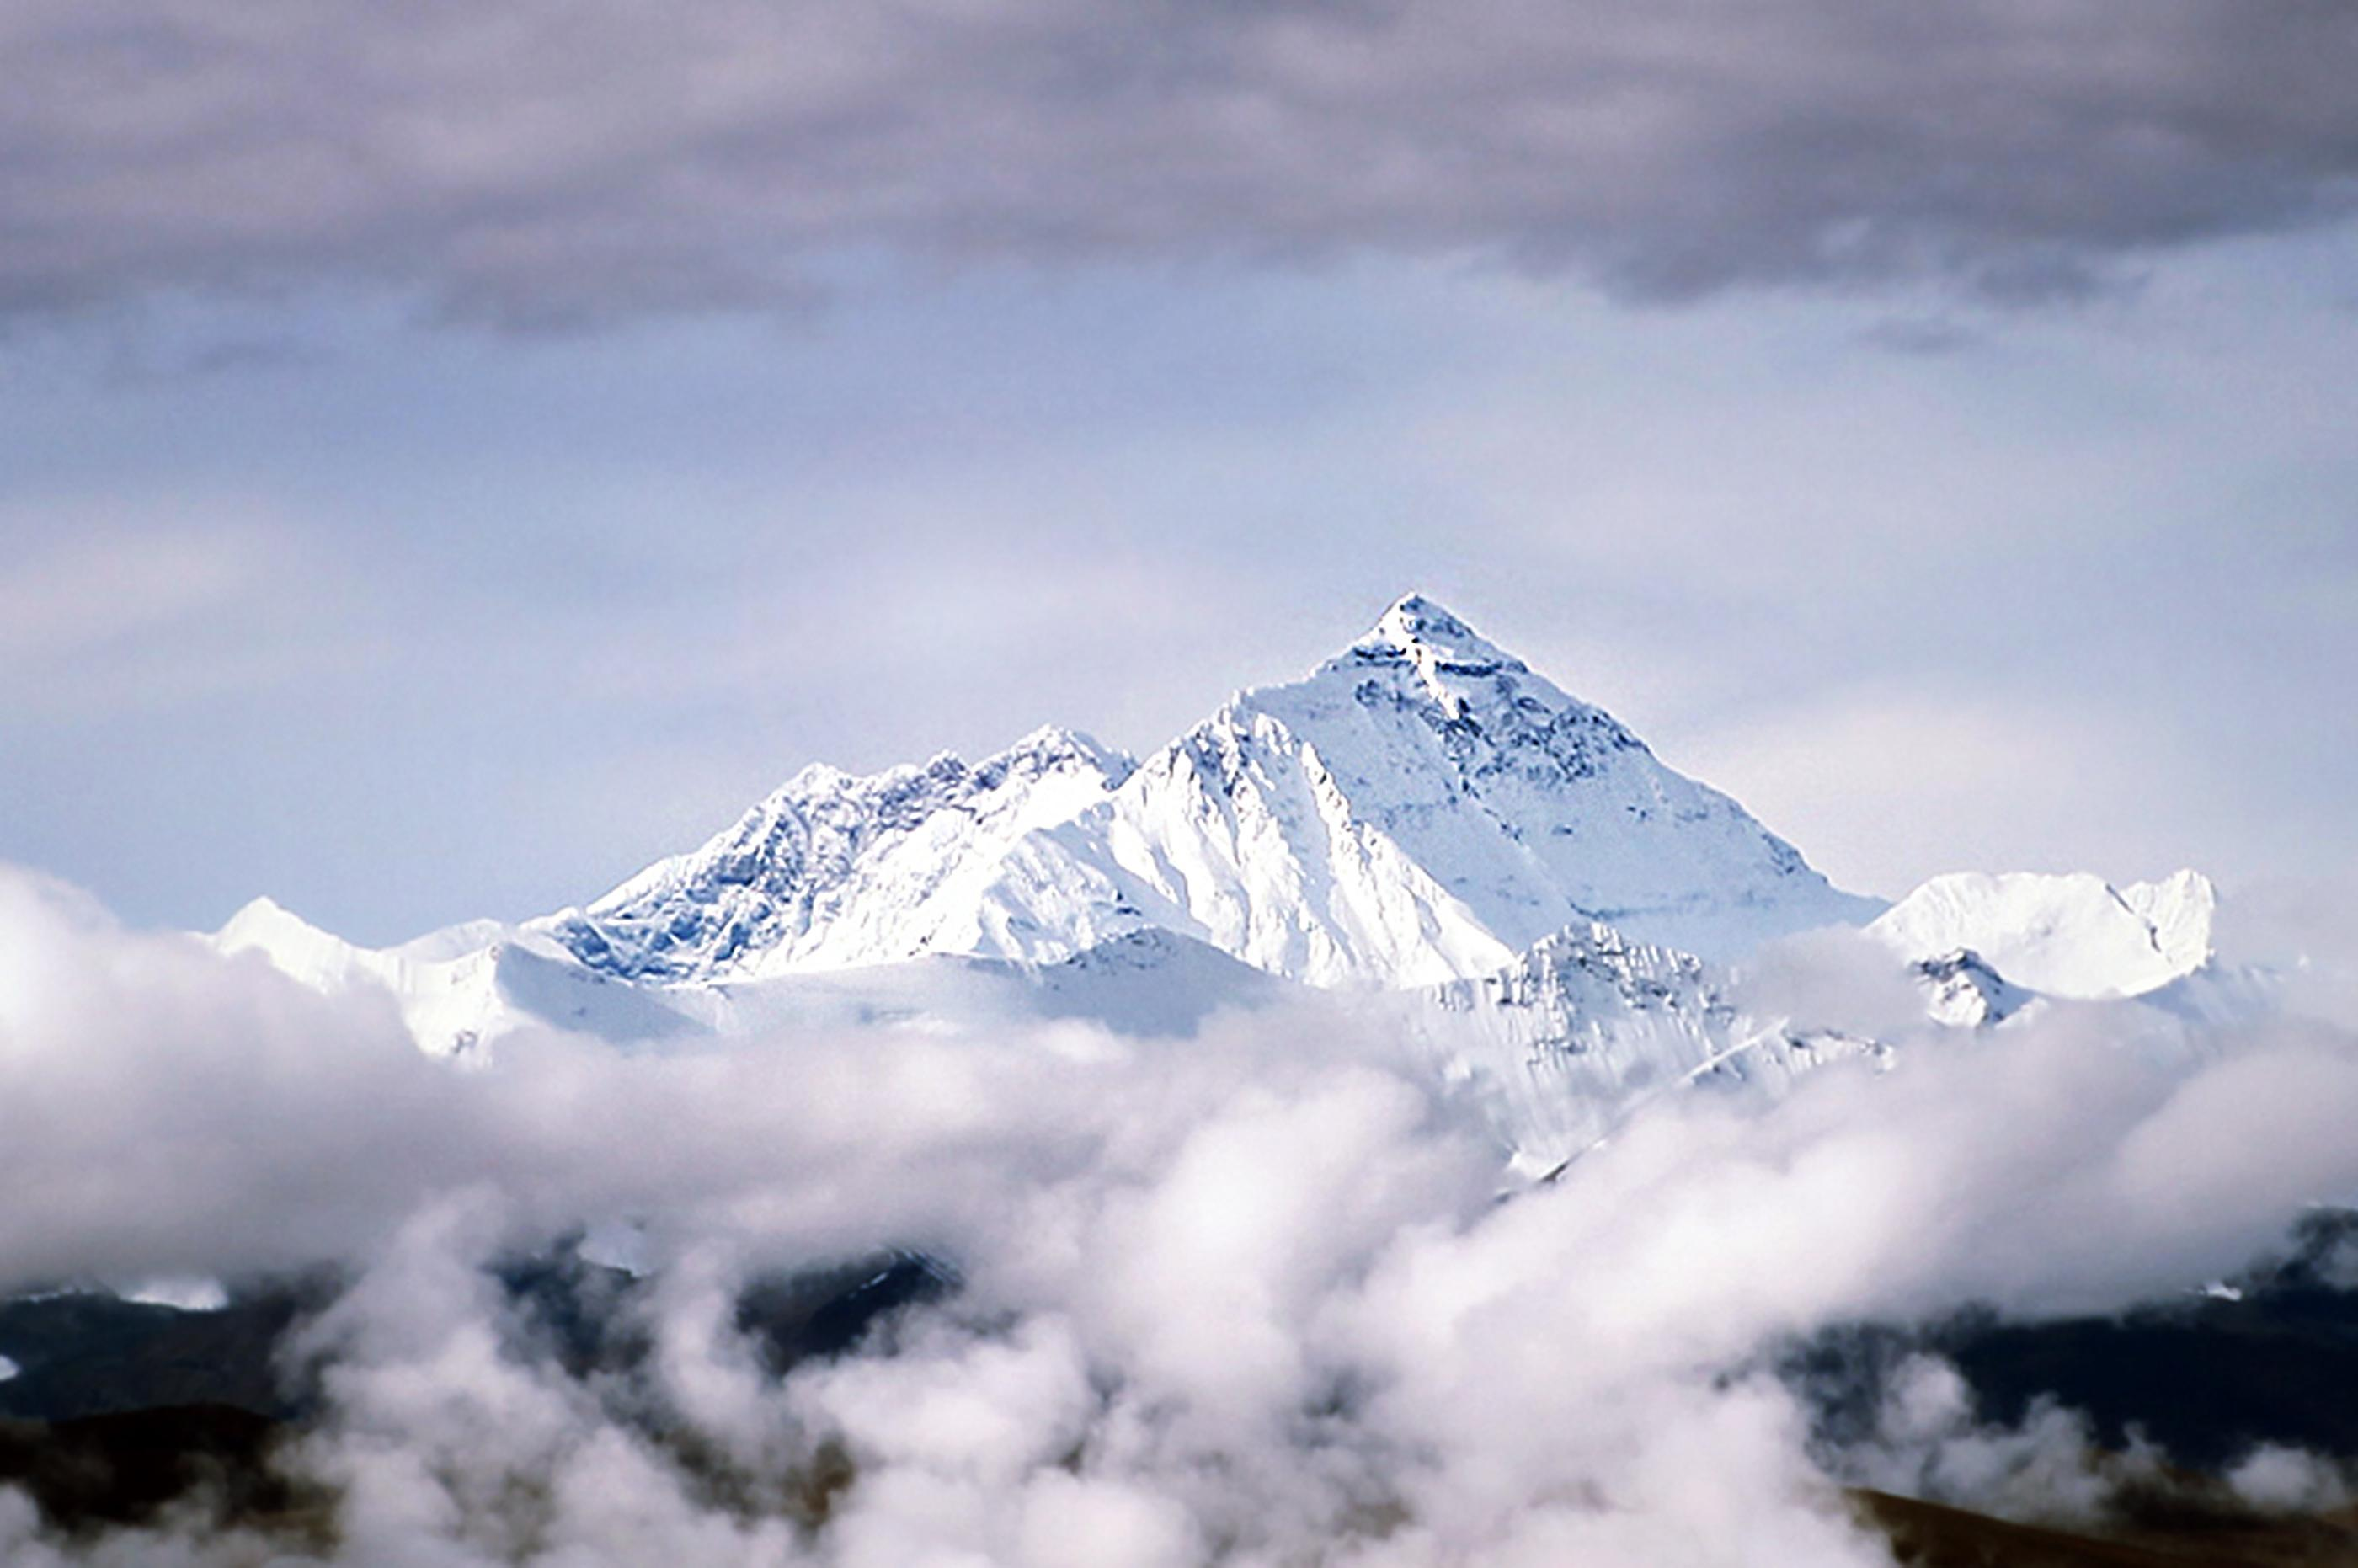 mount everest pictures - HD2100×1397